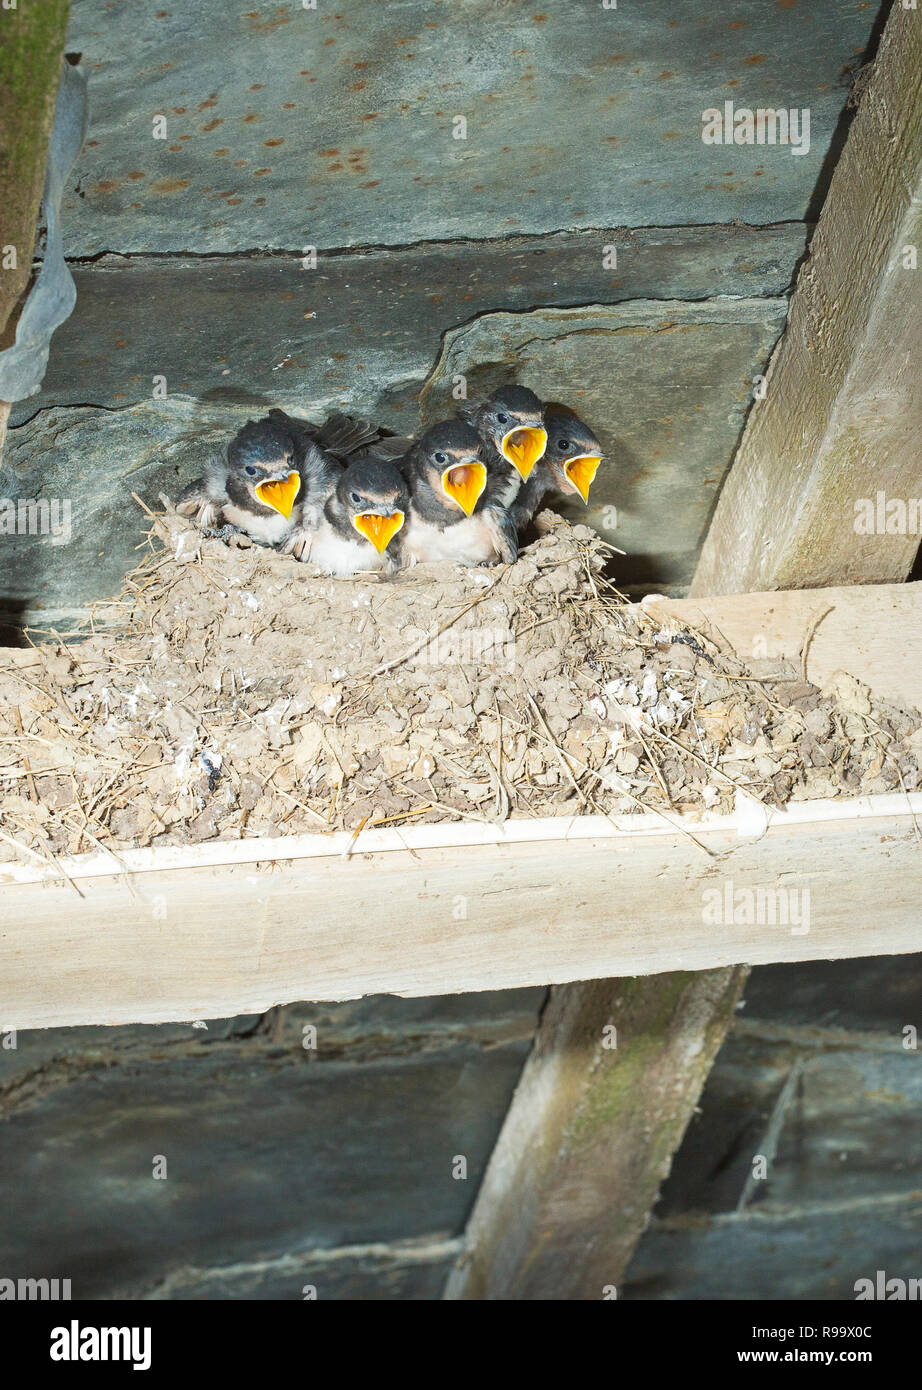 A nest full of baby swallows with their beaks wide open Stock Photo